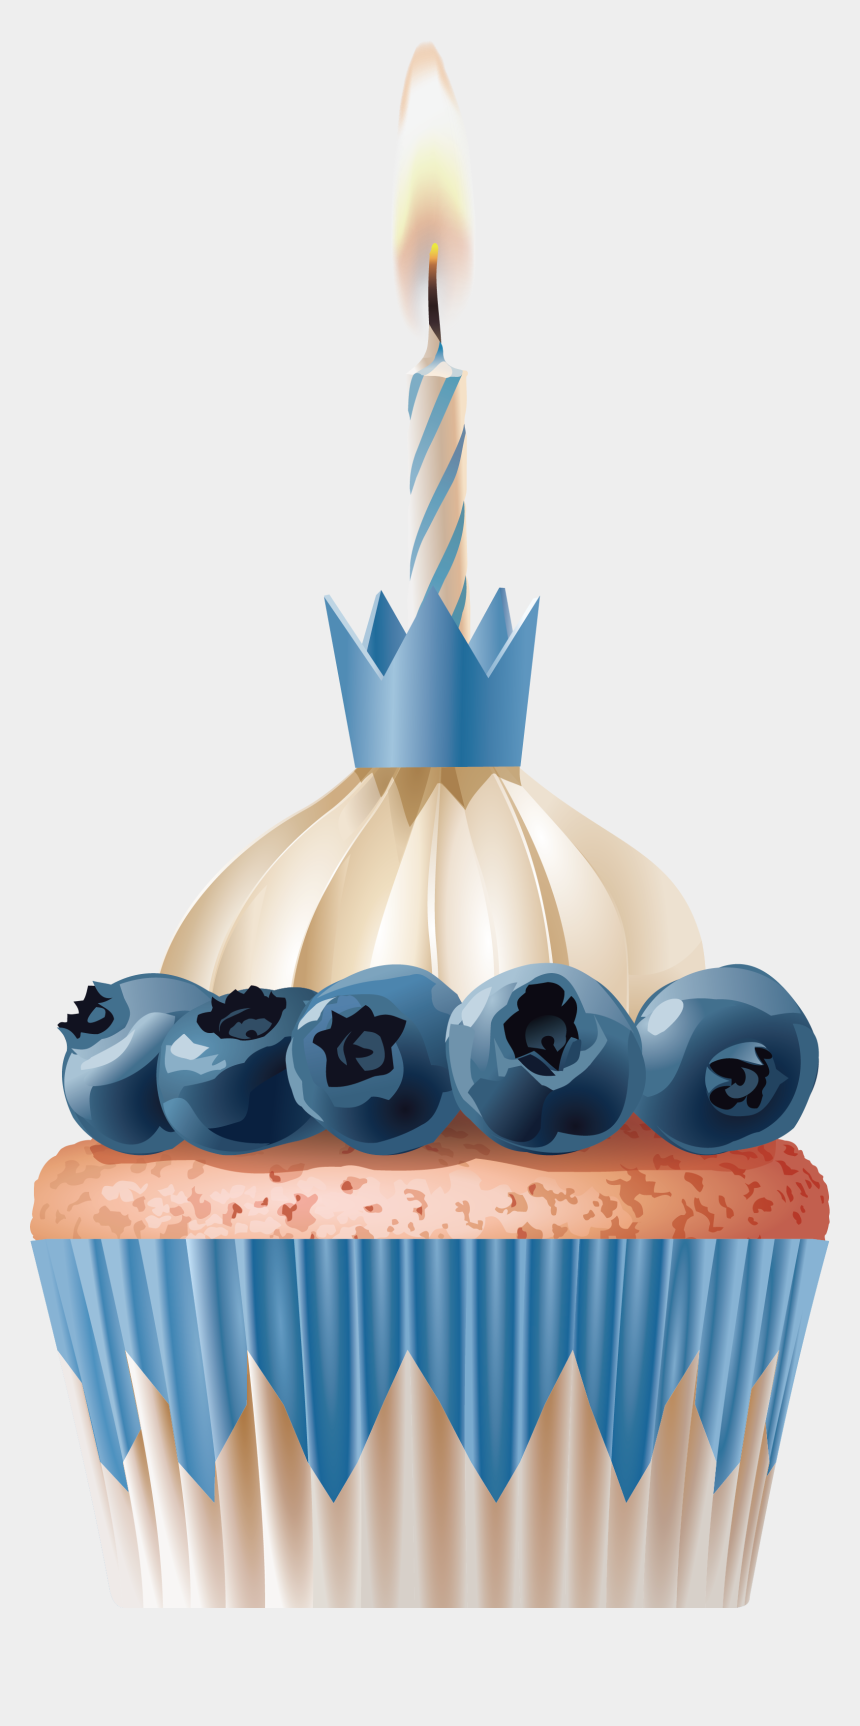 birthday cupcakes clipart, Cartoons - Birthday Cupcake With Lots Of Candles Png Image - Cake